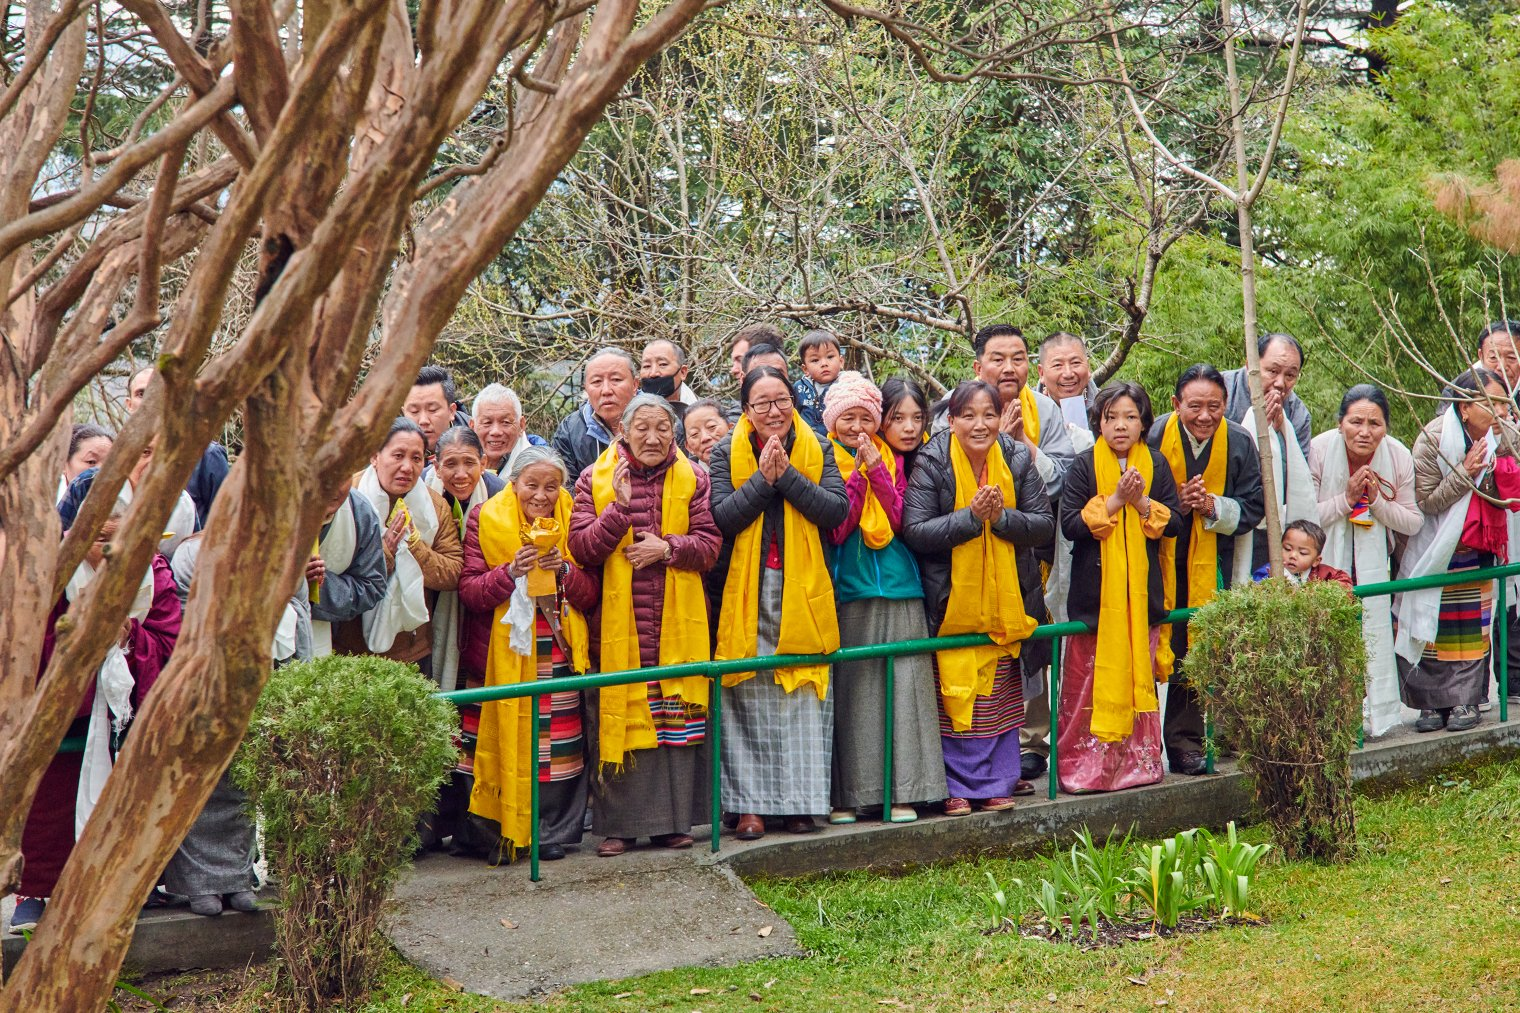 Around 300 devotees line up early at Tsuglagkhang temple to offer the Dalai Lama traditional khata scarves and to receive his blessing.